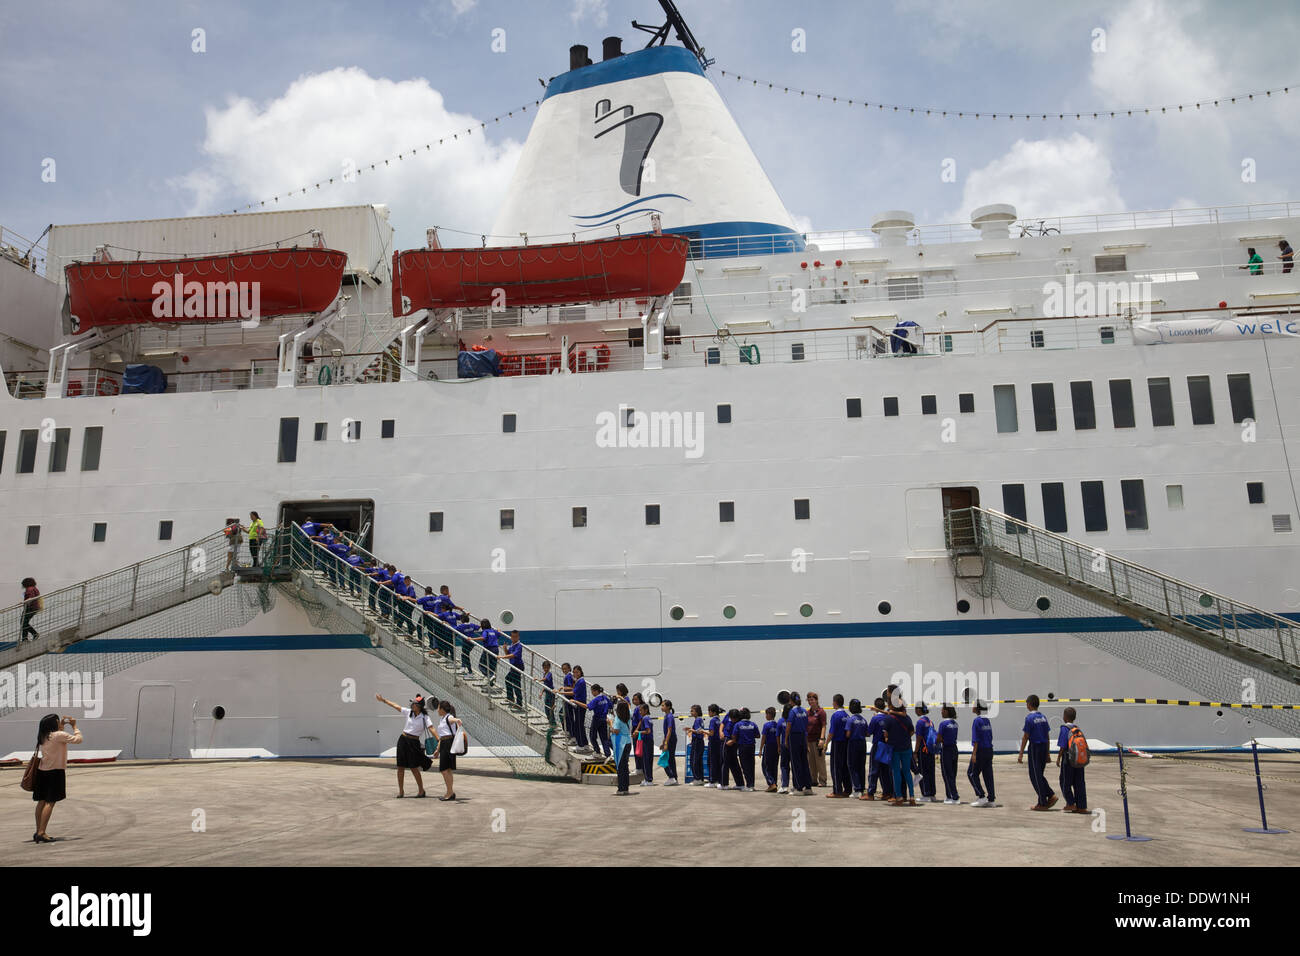 School children going abroad the Logos Hope, mobile book fair, tied up in Phuket harbour, Thailand - Stock Image